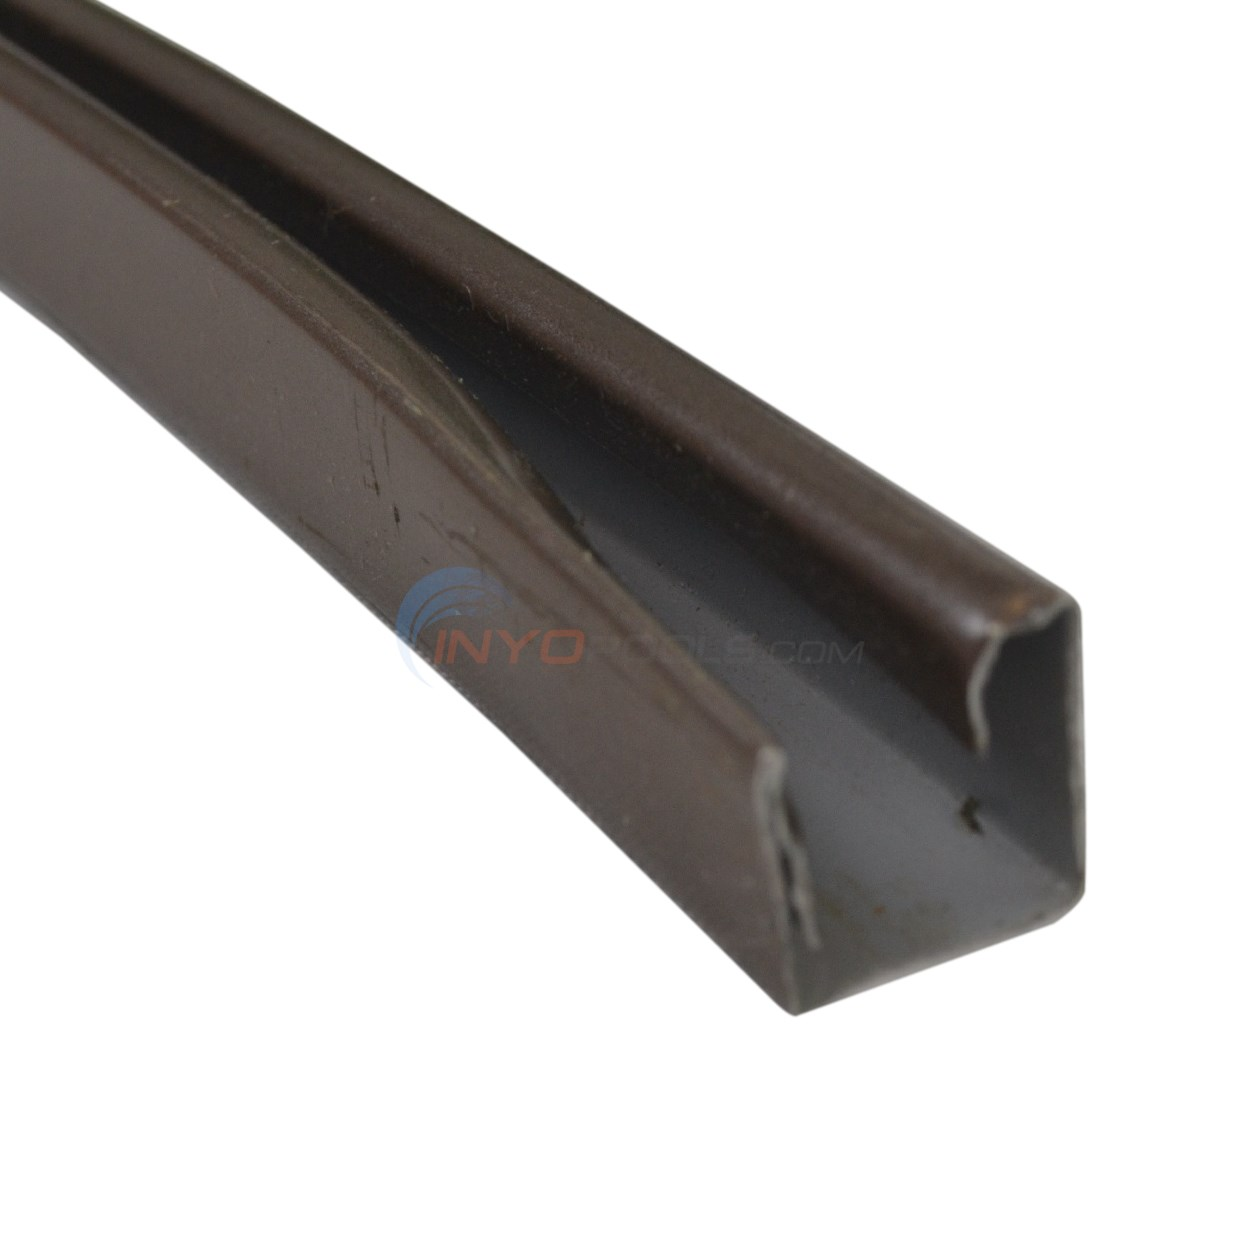 "Wilbar 12' Bottom Rail 44-5/8"" (Single) 1460048  For The Atlantis"